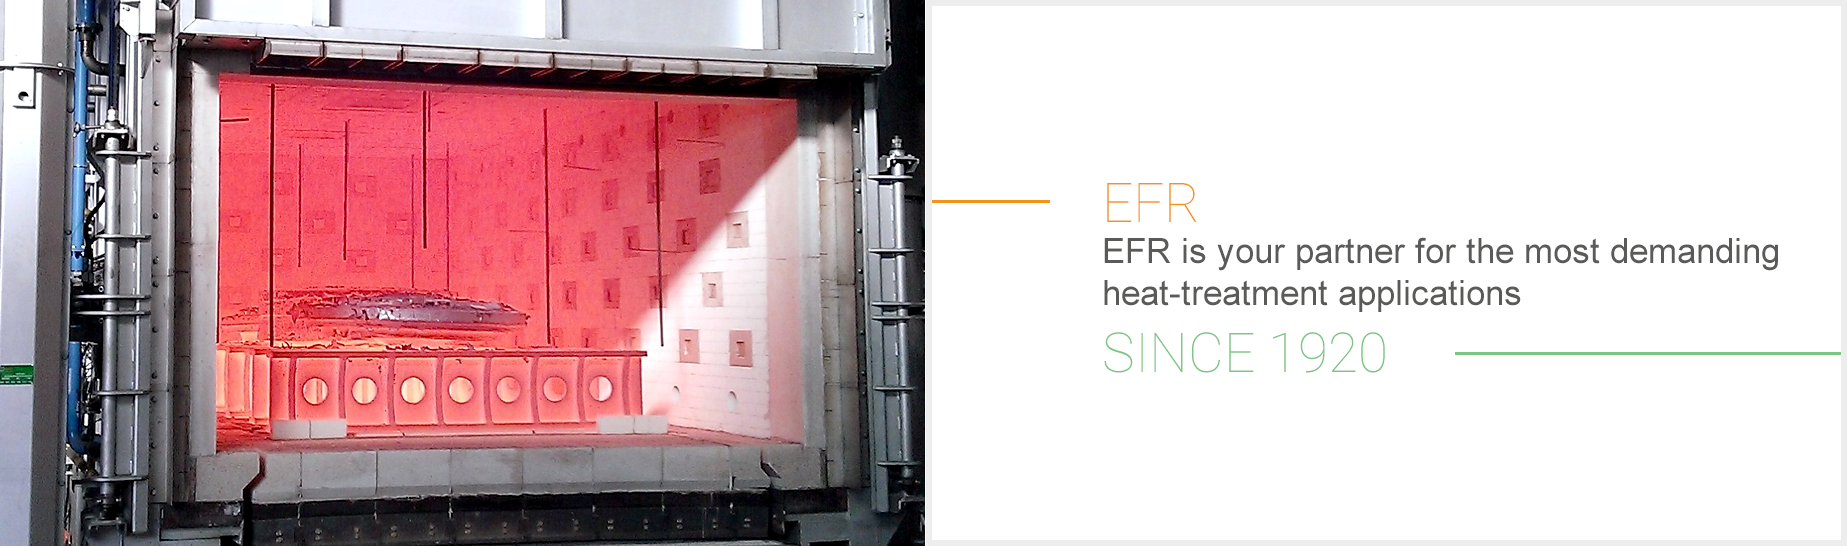 EFR is your partner for the most demanding heat-treatment applications